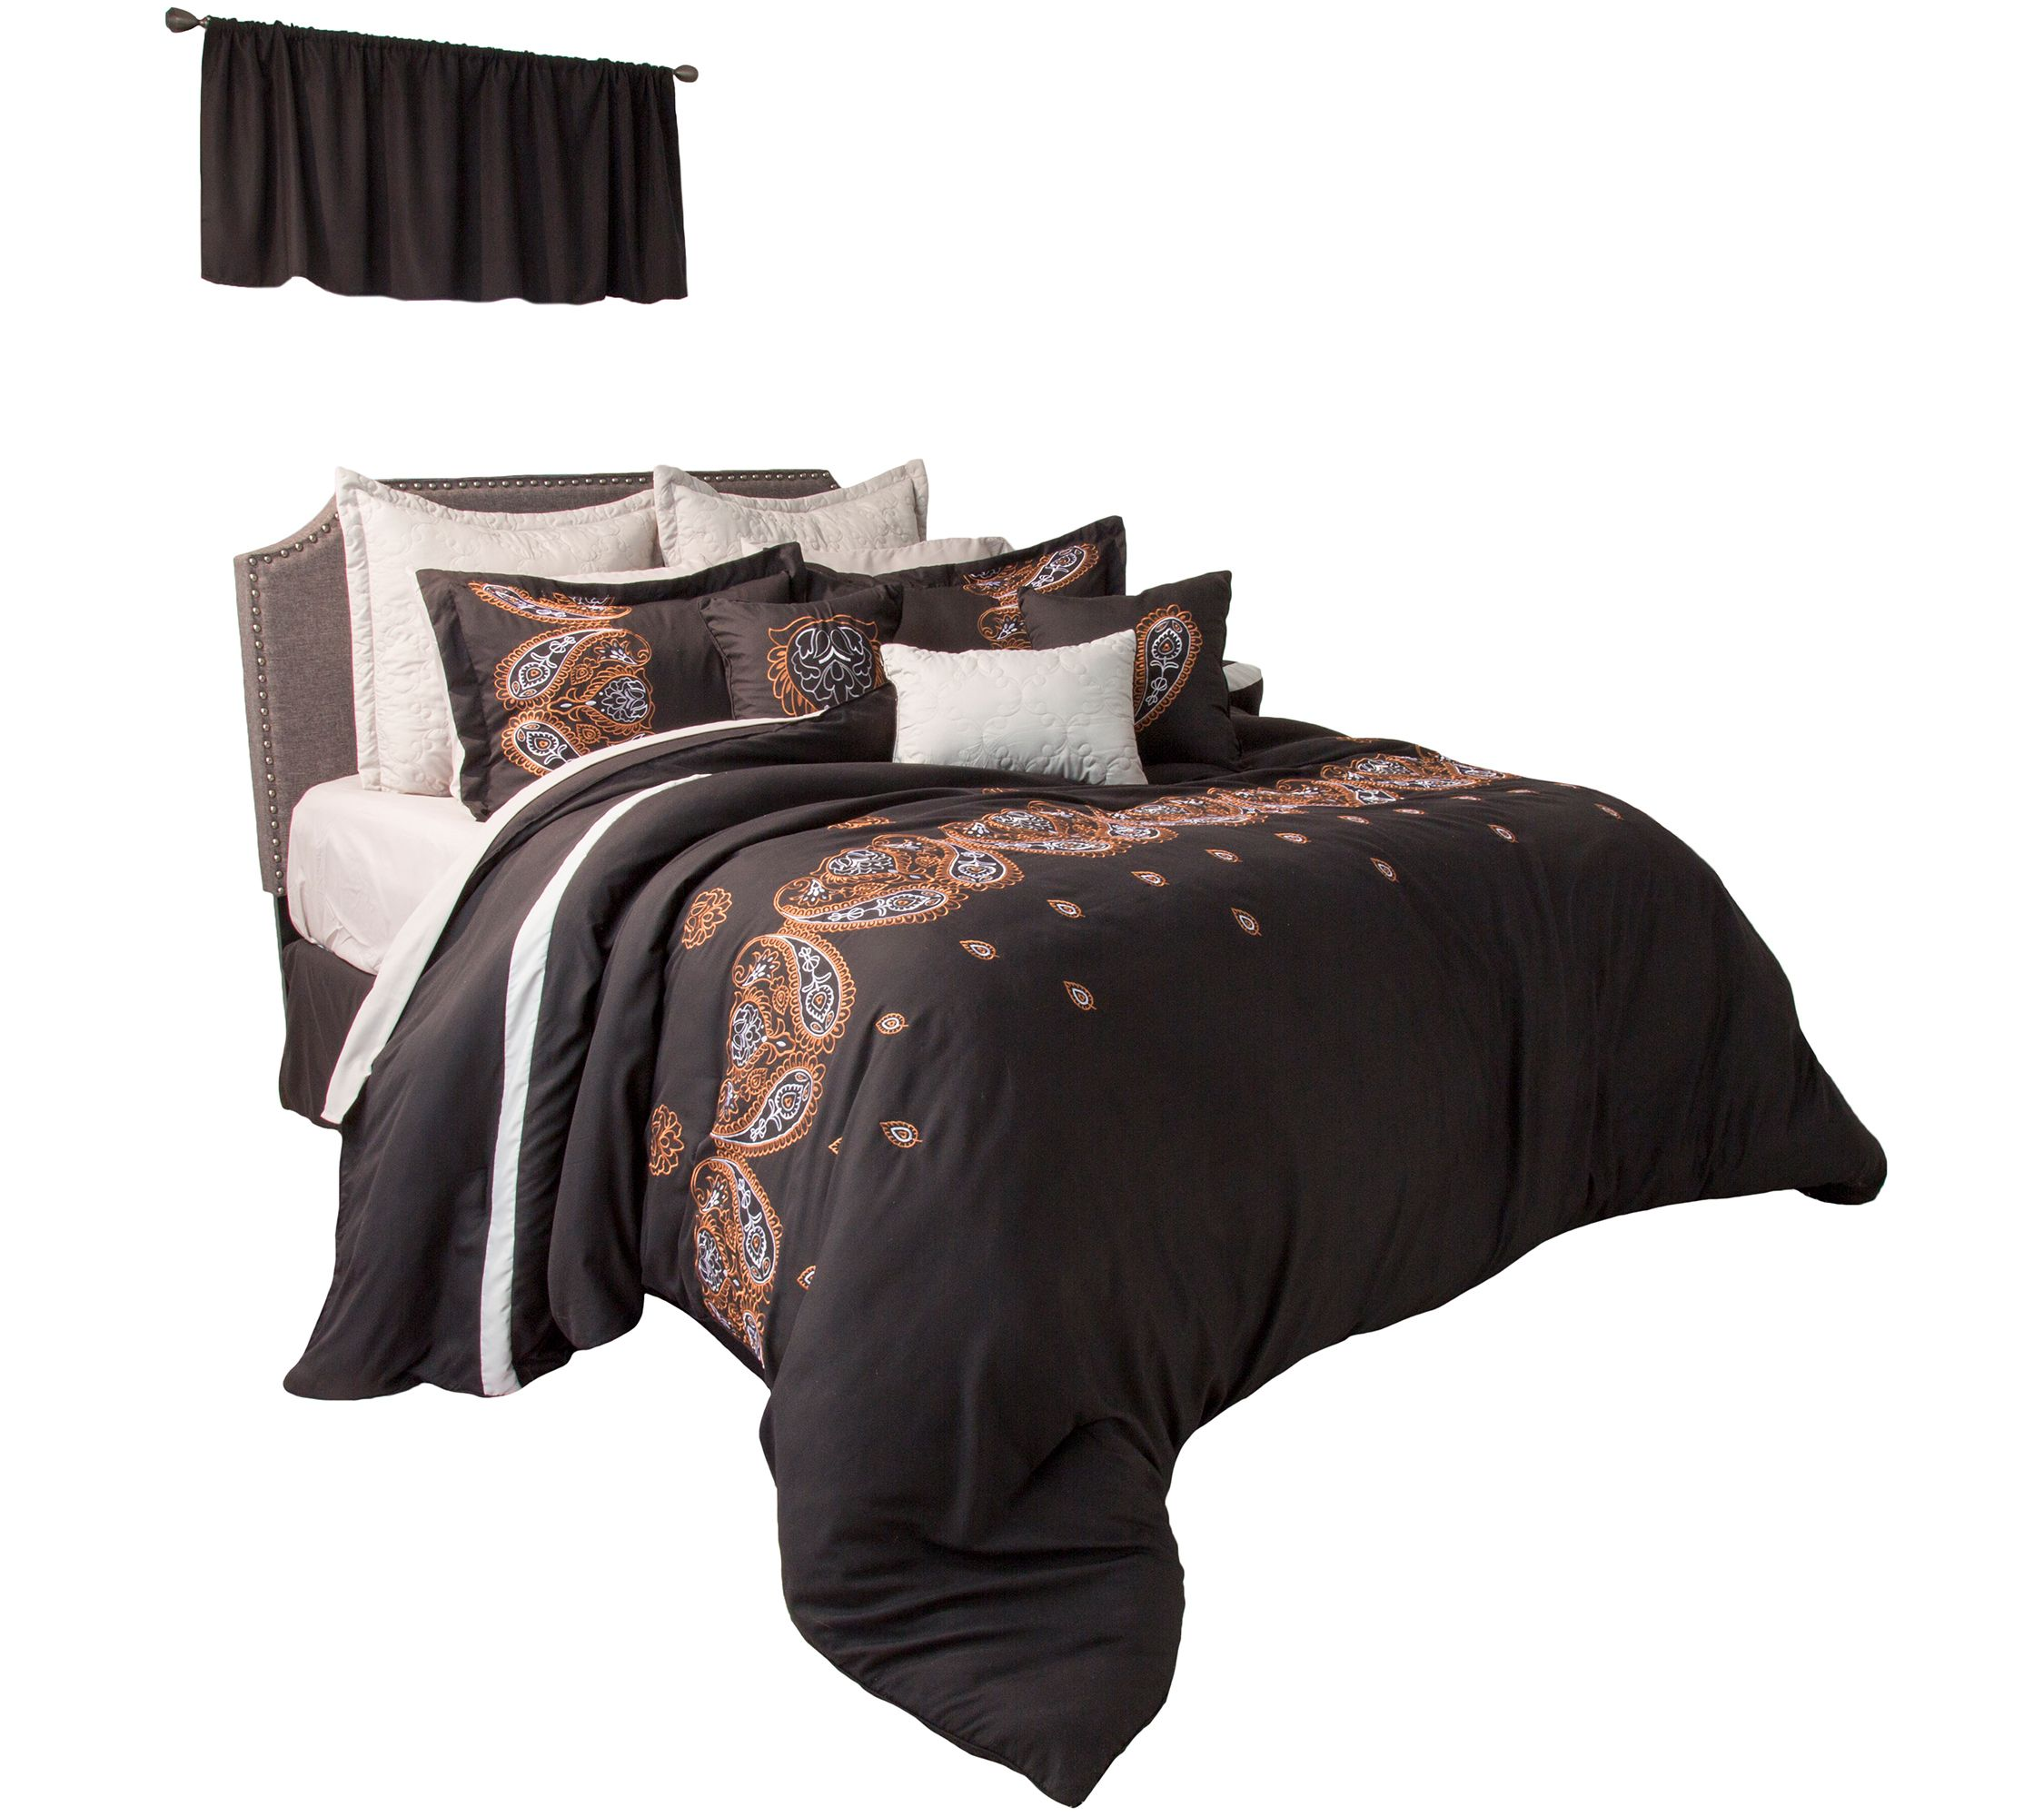 purple quilt covers luxury design size your of green full forter throws match home bedding curtain sets remodel set about uk with fearsome king grey duvet duvets interior comforter bedroom matching stylish australia curtains bedspread queen quilts to and orange in nice own ideas